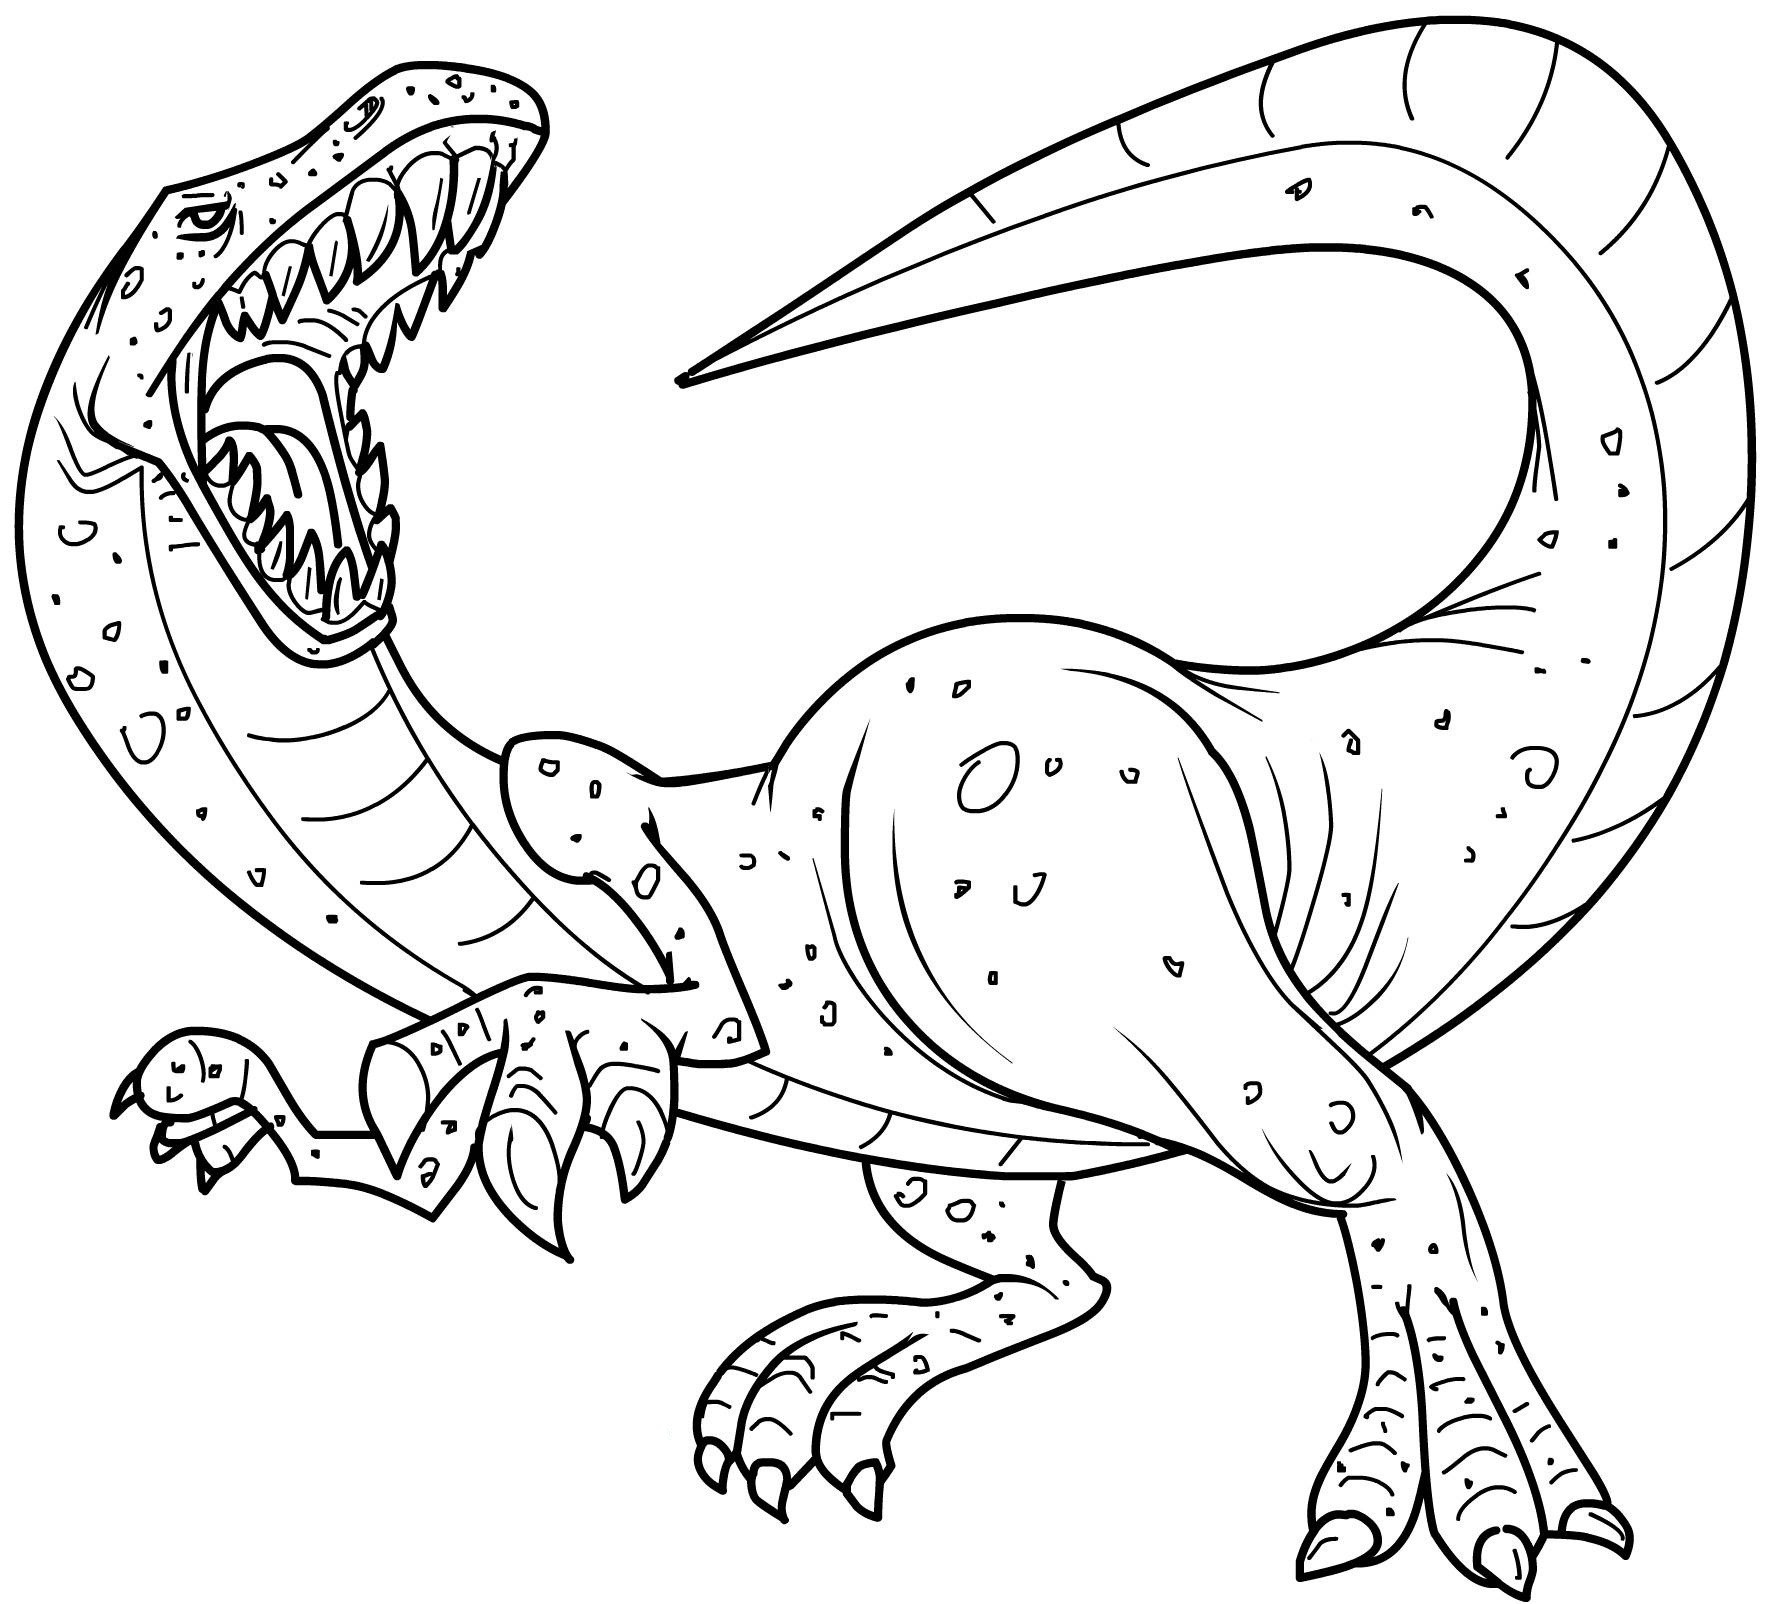 print dinosaur coloring pages dinosaurs coloring pages collection free coloring sheets coloring pages print dinosaur